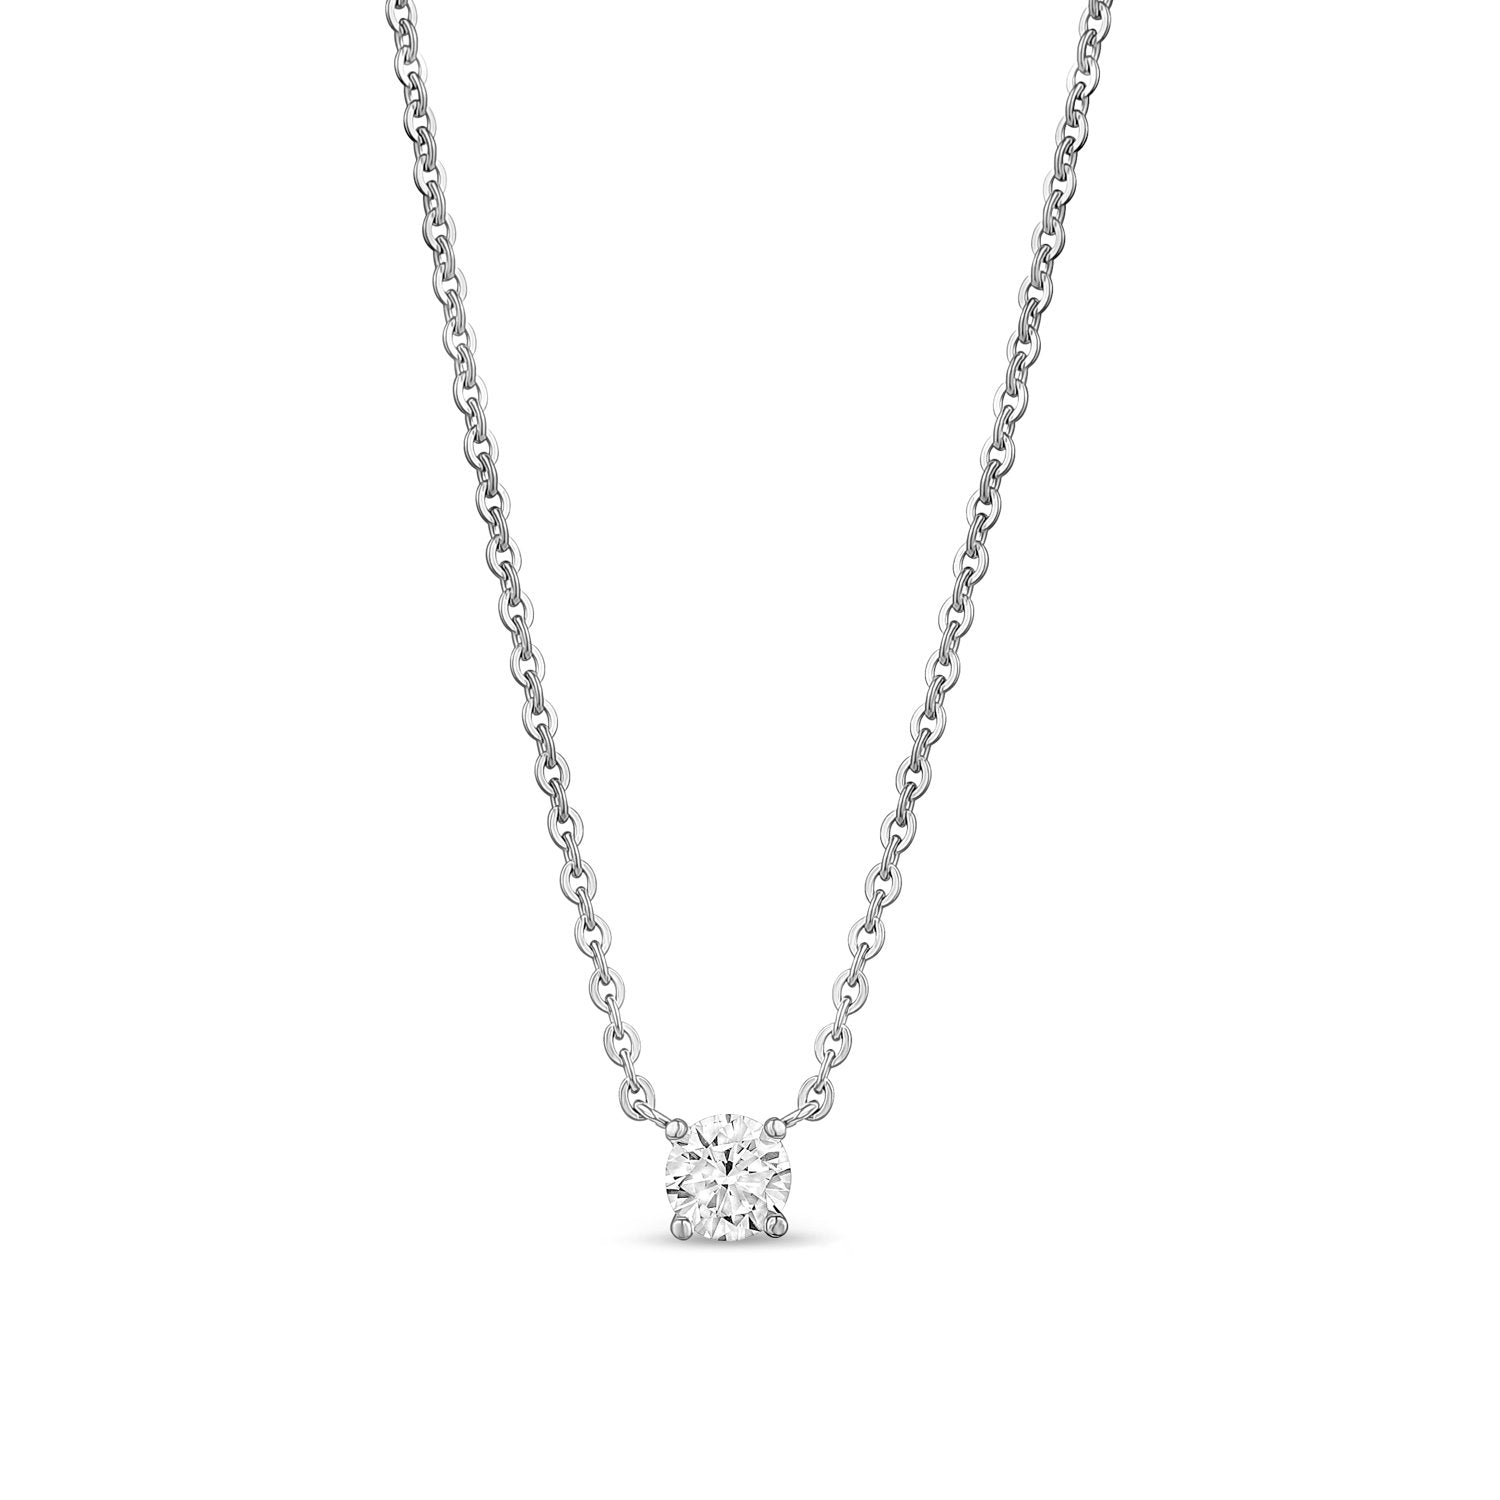 Women Pendant - 5mm Cubic Zircon Stainless Steel Pendant